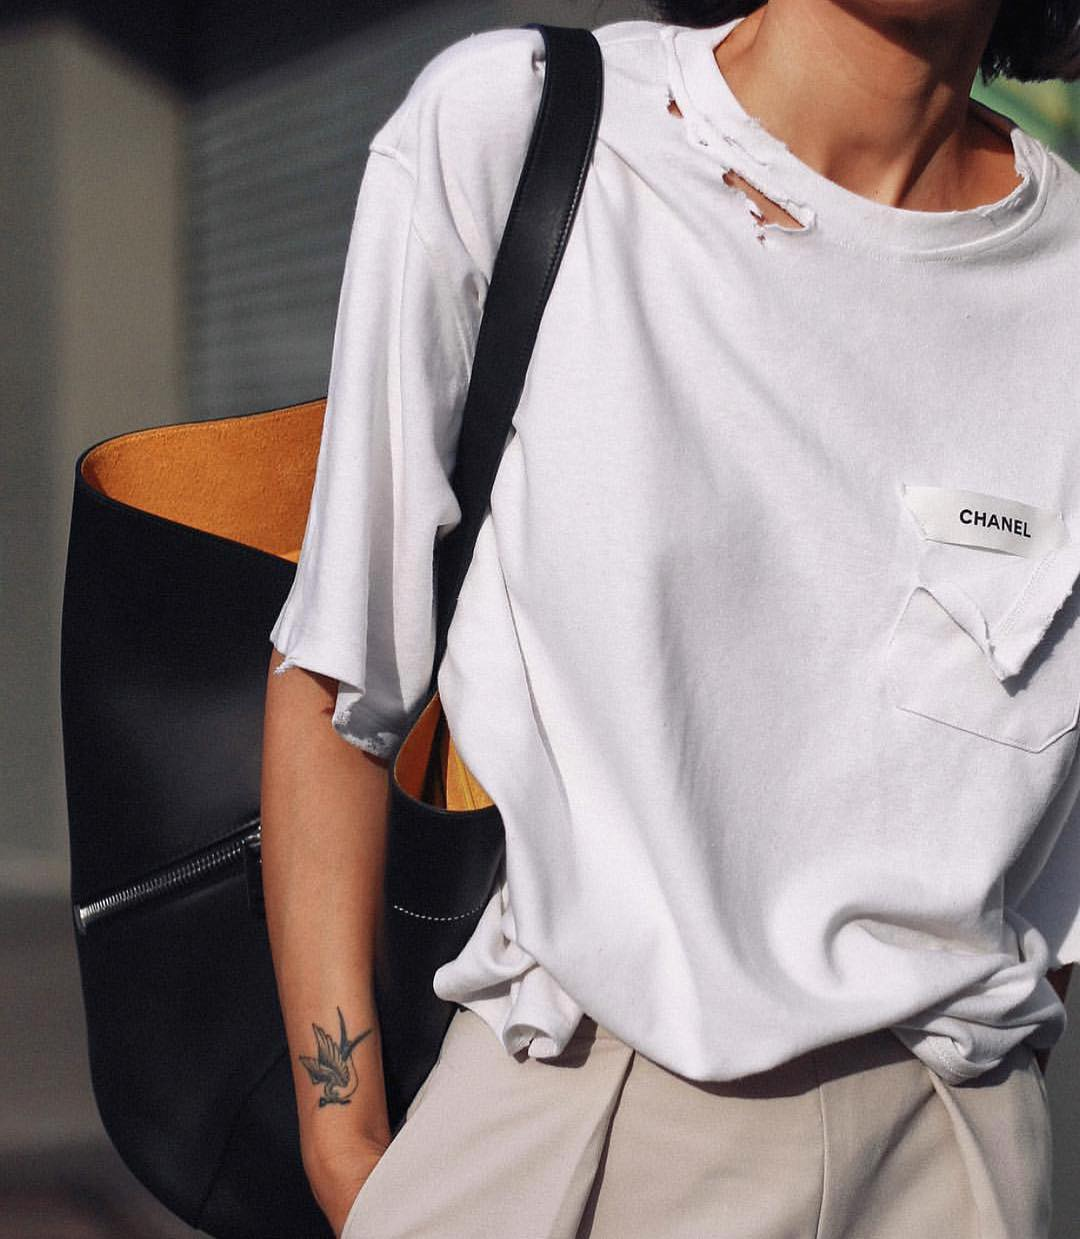 Ripped White Tee In Oversized Fit And Big Tote Bag In Black For Summer 2019